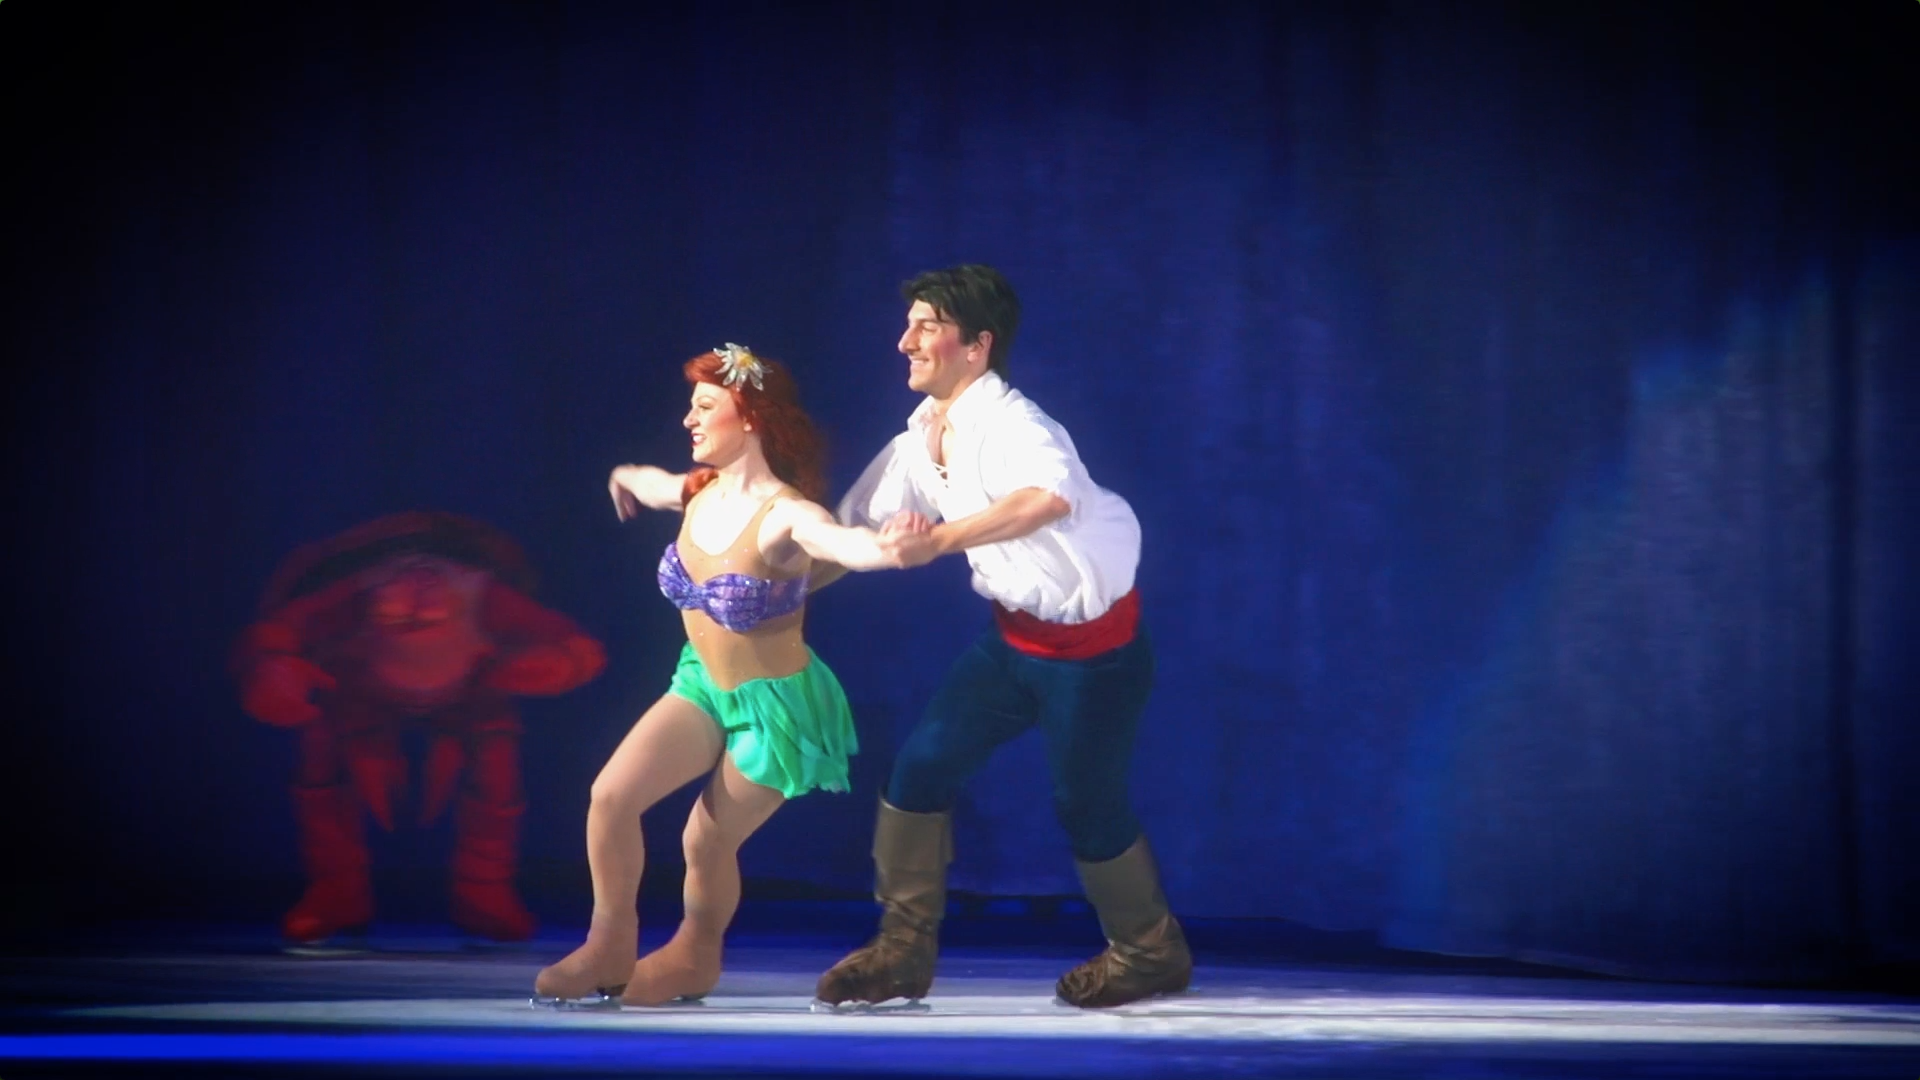 A Pequena Sereia – Disney on Ice